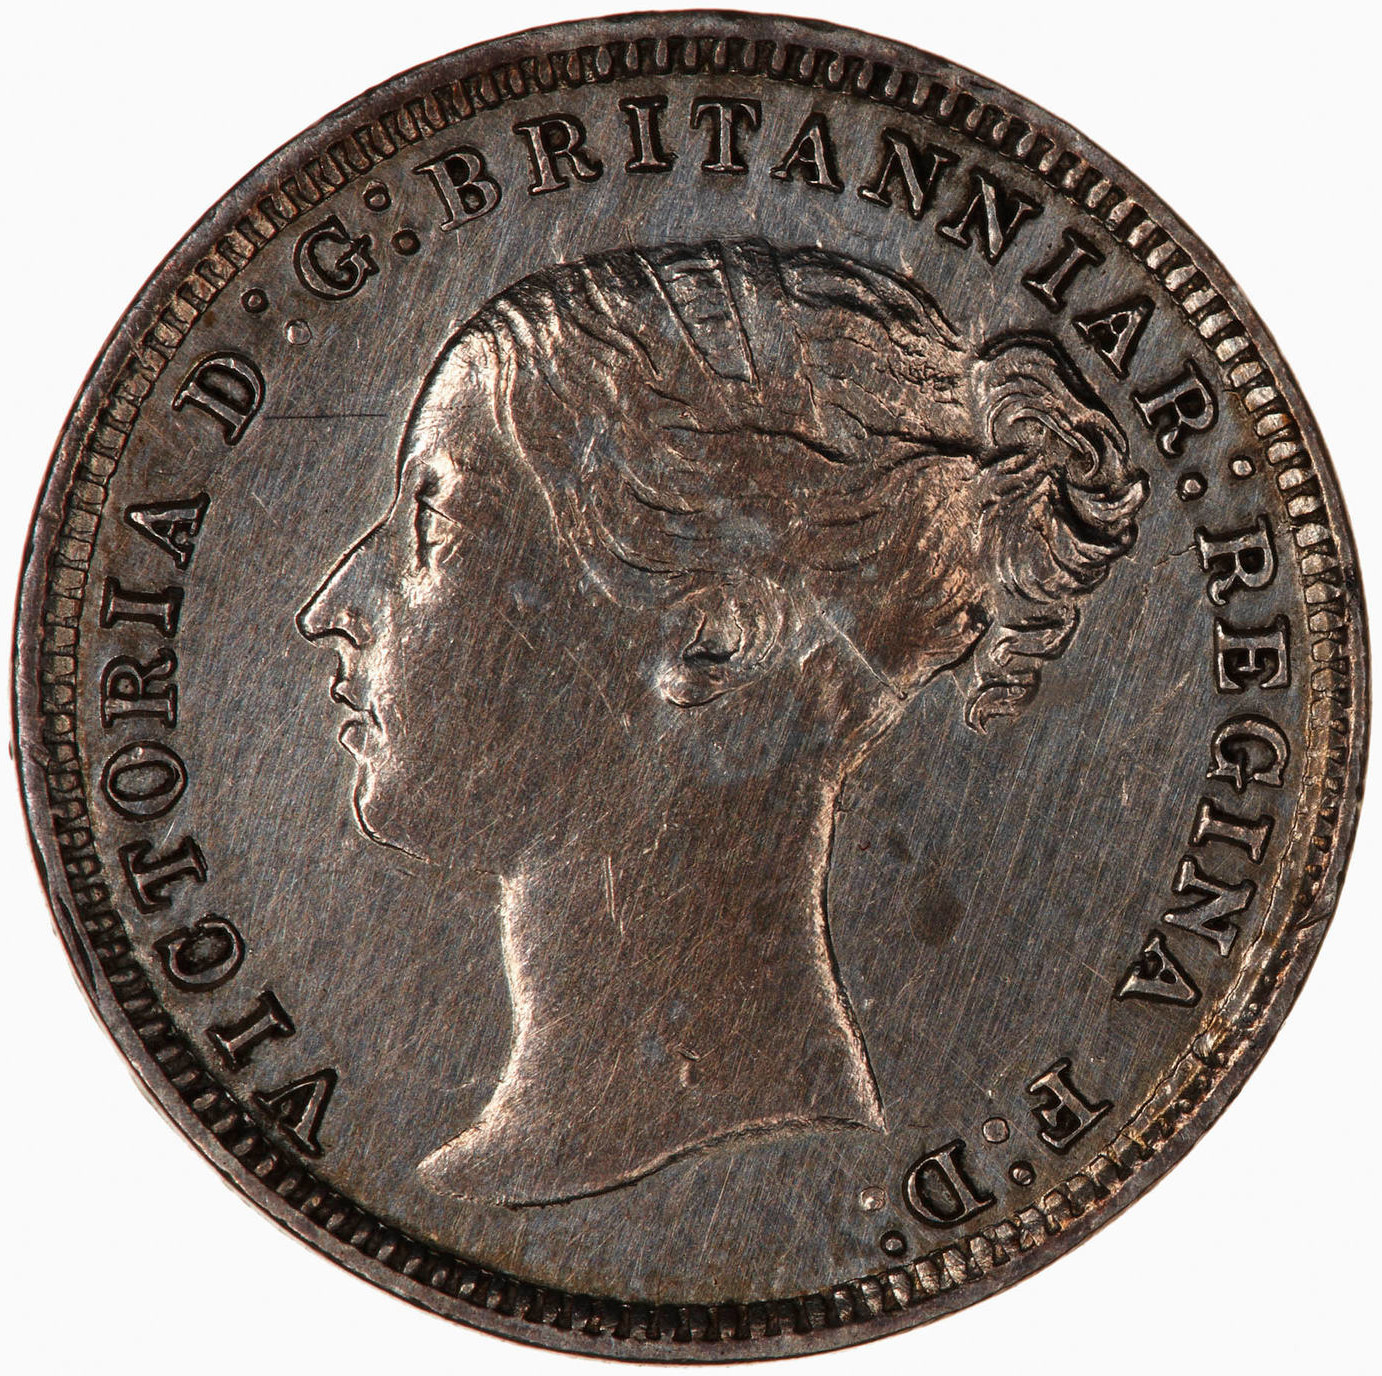 Threepence (Circulating): Photo Coin - Threepence, Queen Victoria, Great Britain, 1877